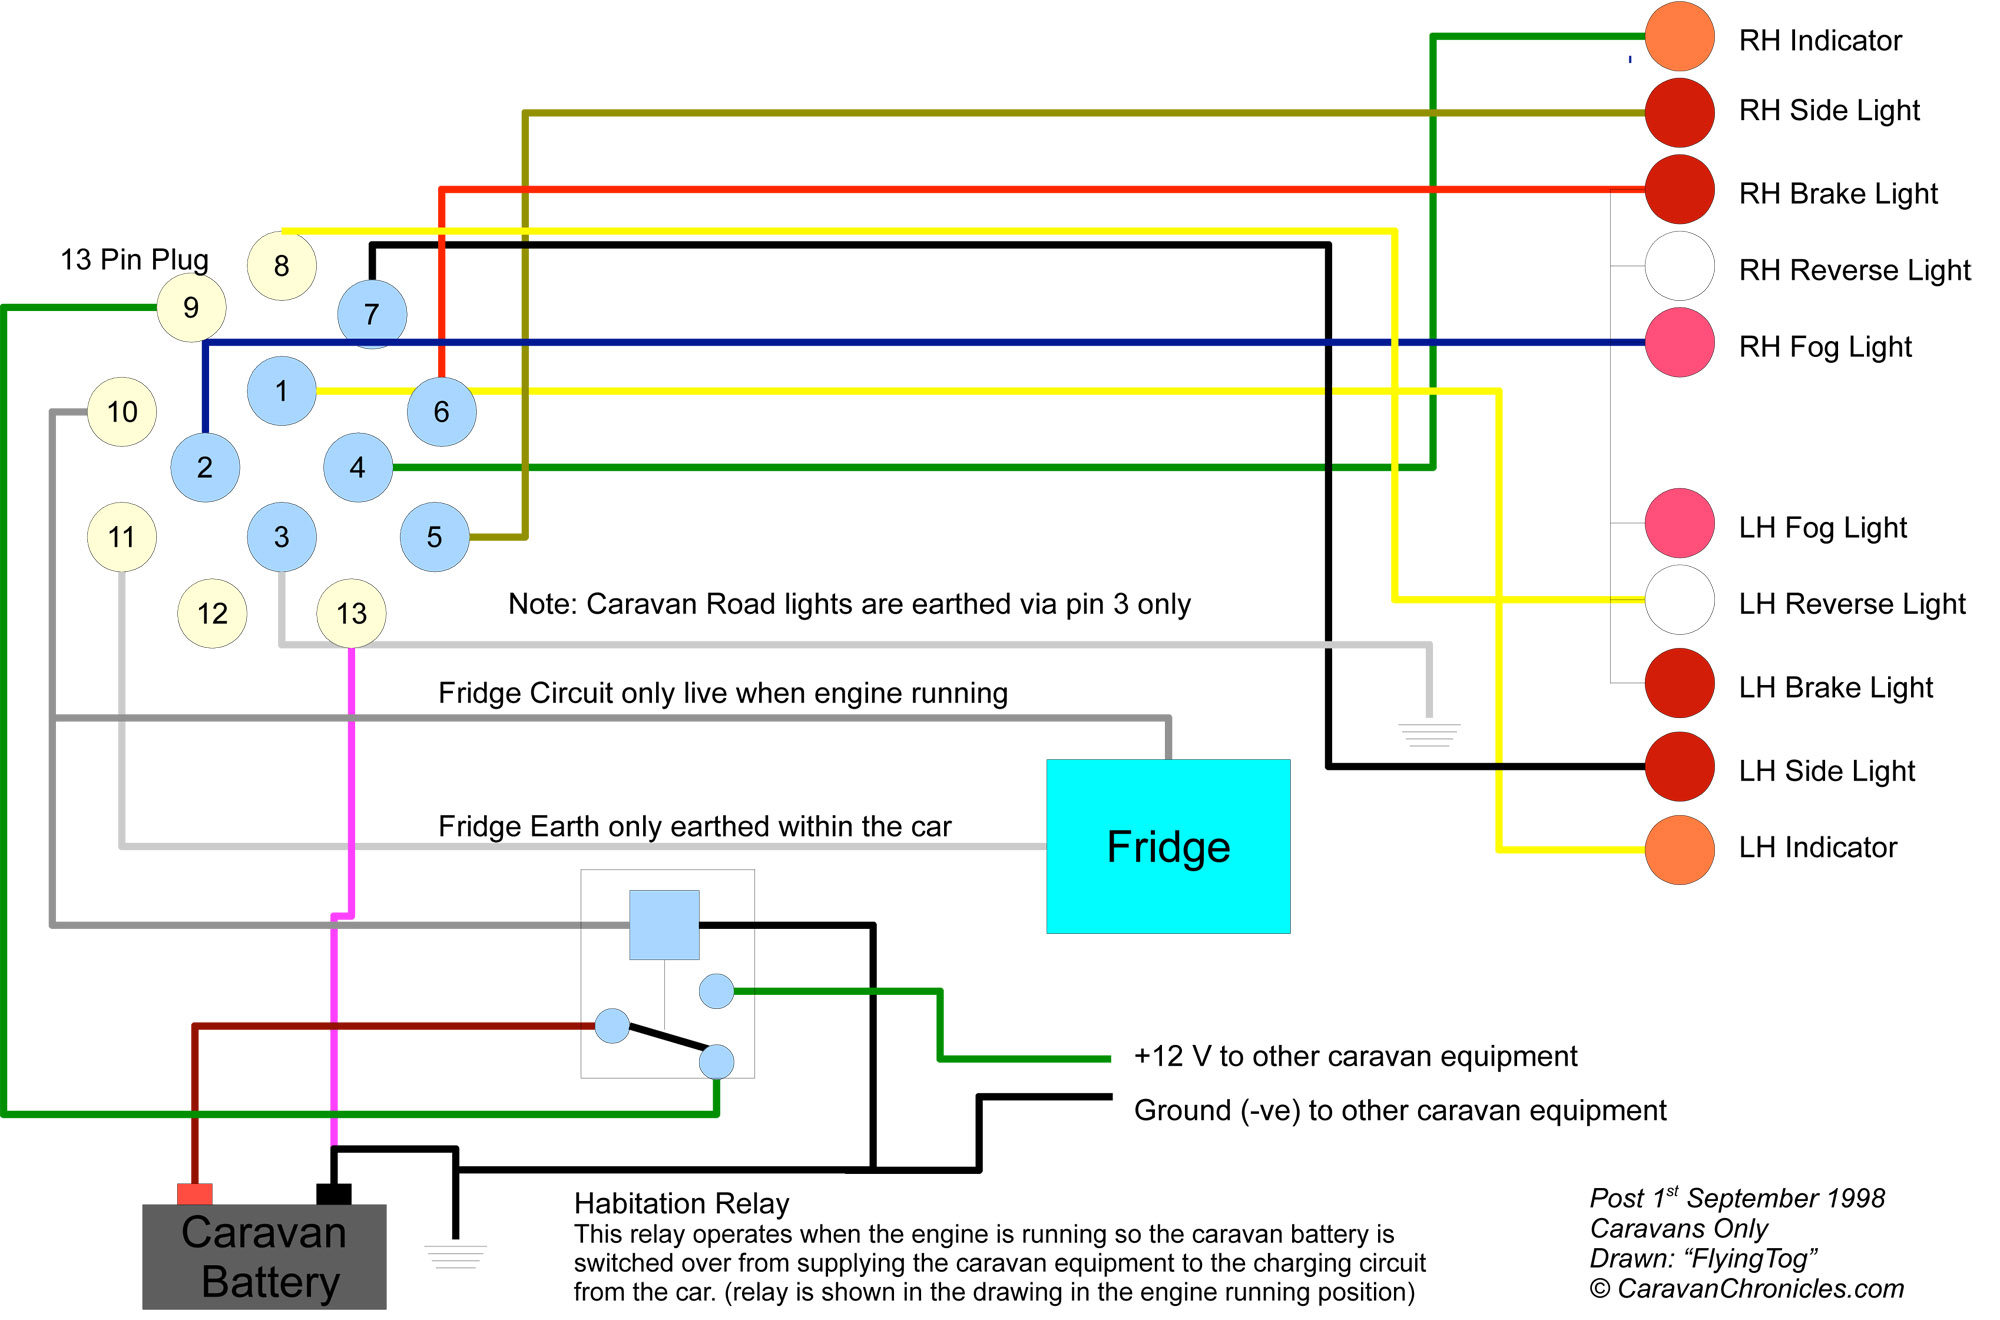 caravan wiring 13 pin understanding caravan and tow car electrics caravan chronicles 12v caravan plug wiring diagram at eliteediting.co